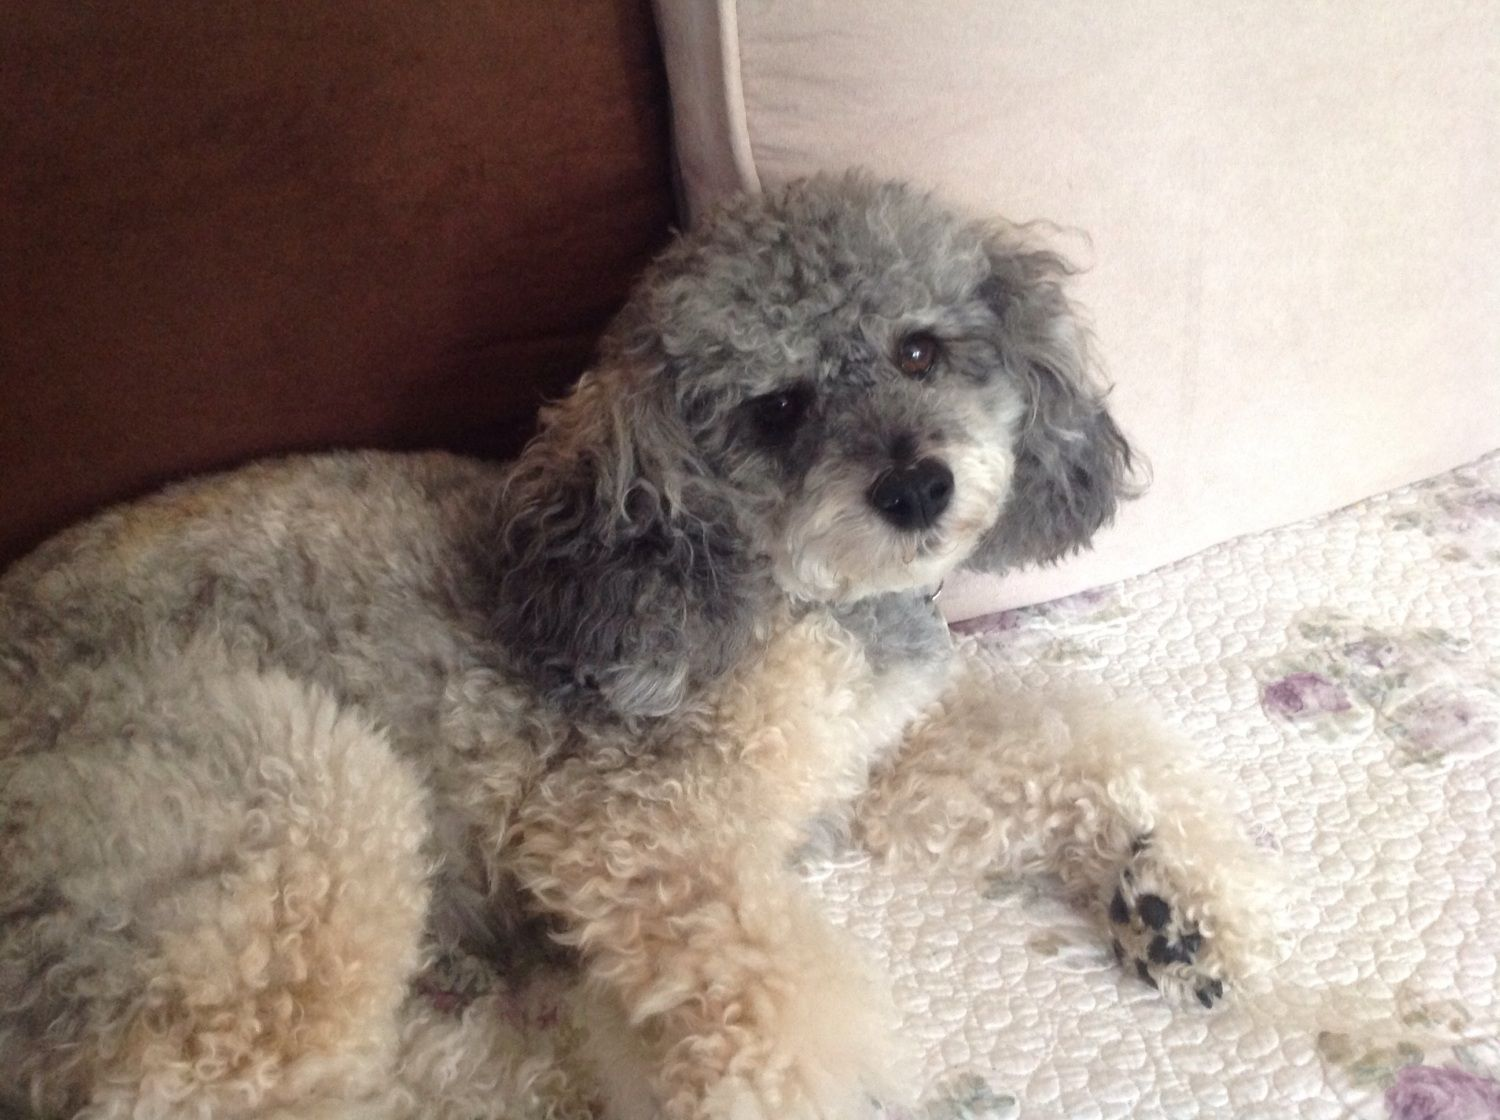 This is my 5 year old Poodle mix that I fostered for Bay area Poodle Rescue and I ended up adopting him.  My husband has nick named him Bubba, which fits his personality, LOL!